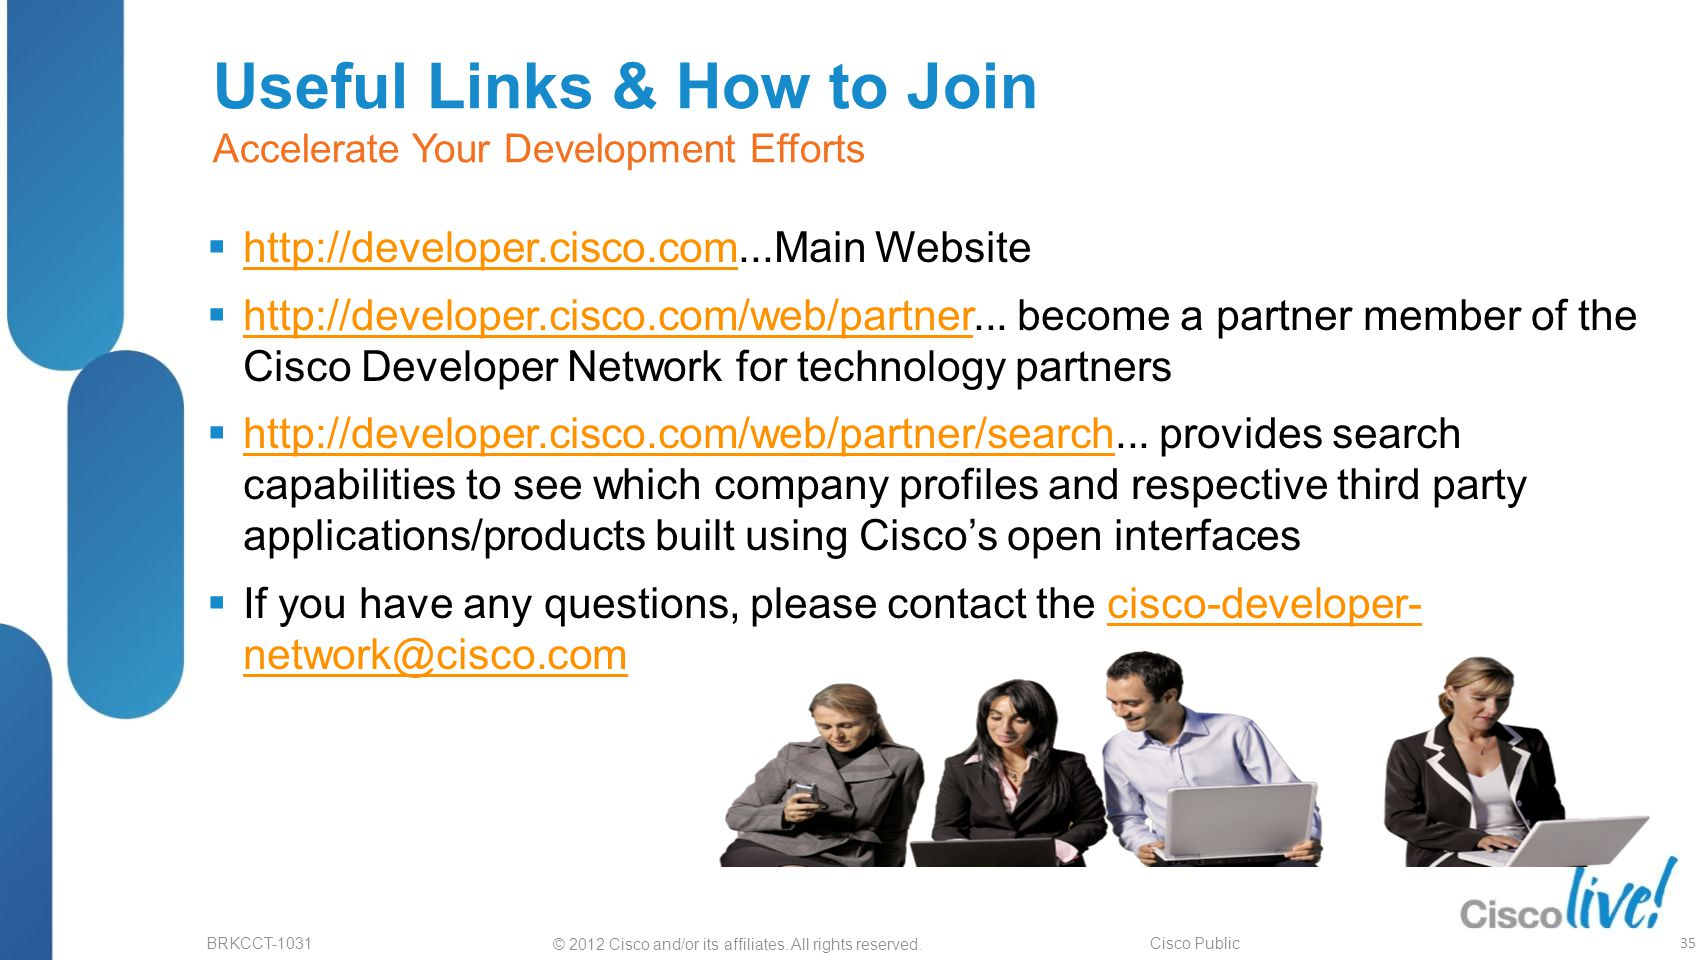 Useful Links & How to Join Accelerate Your Development Efforts